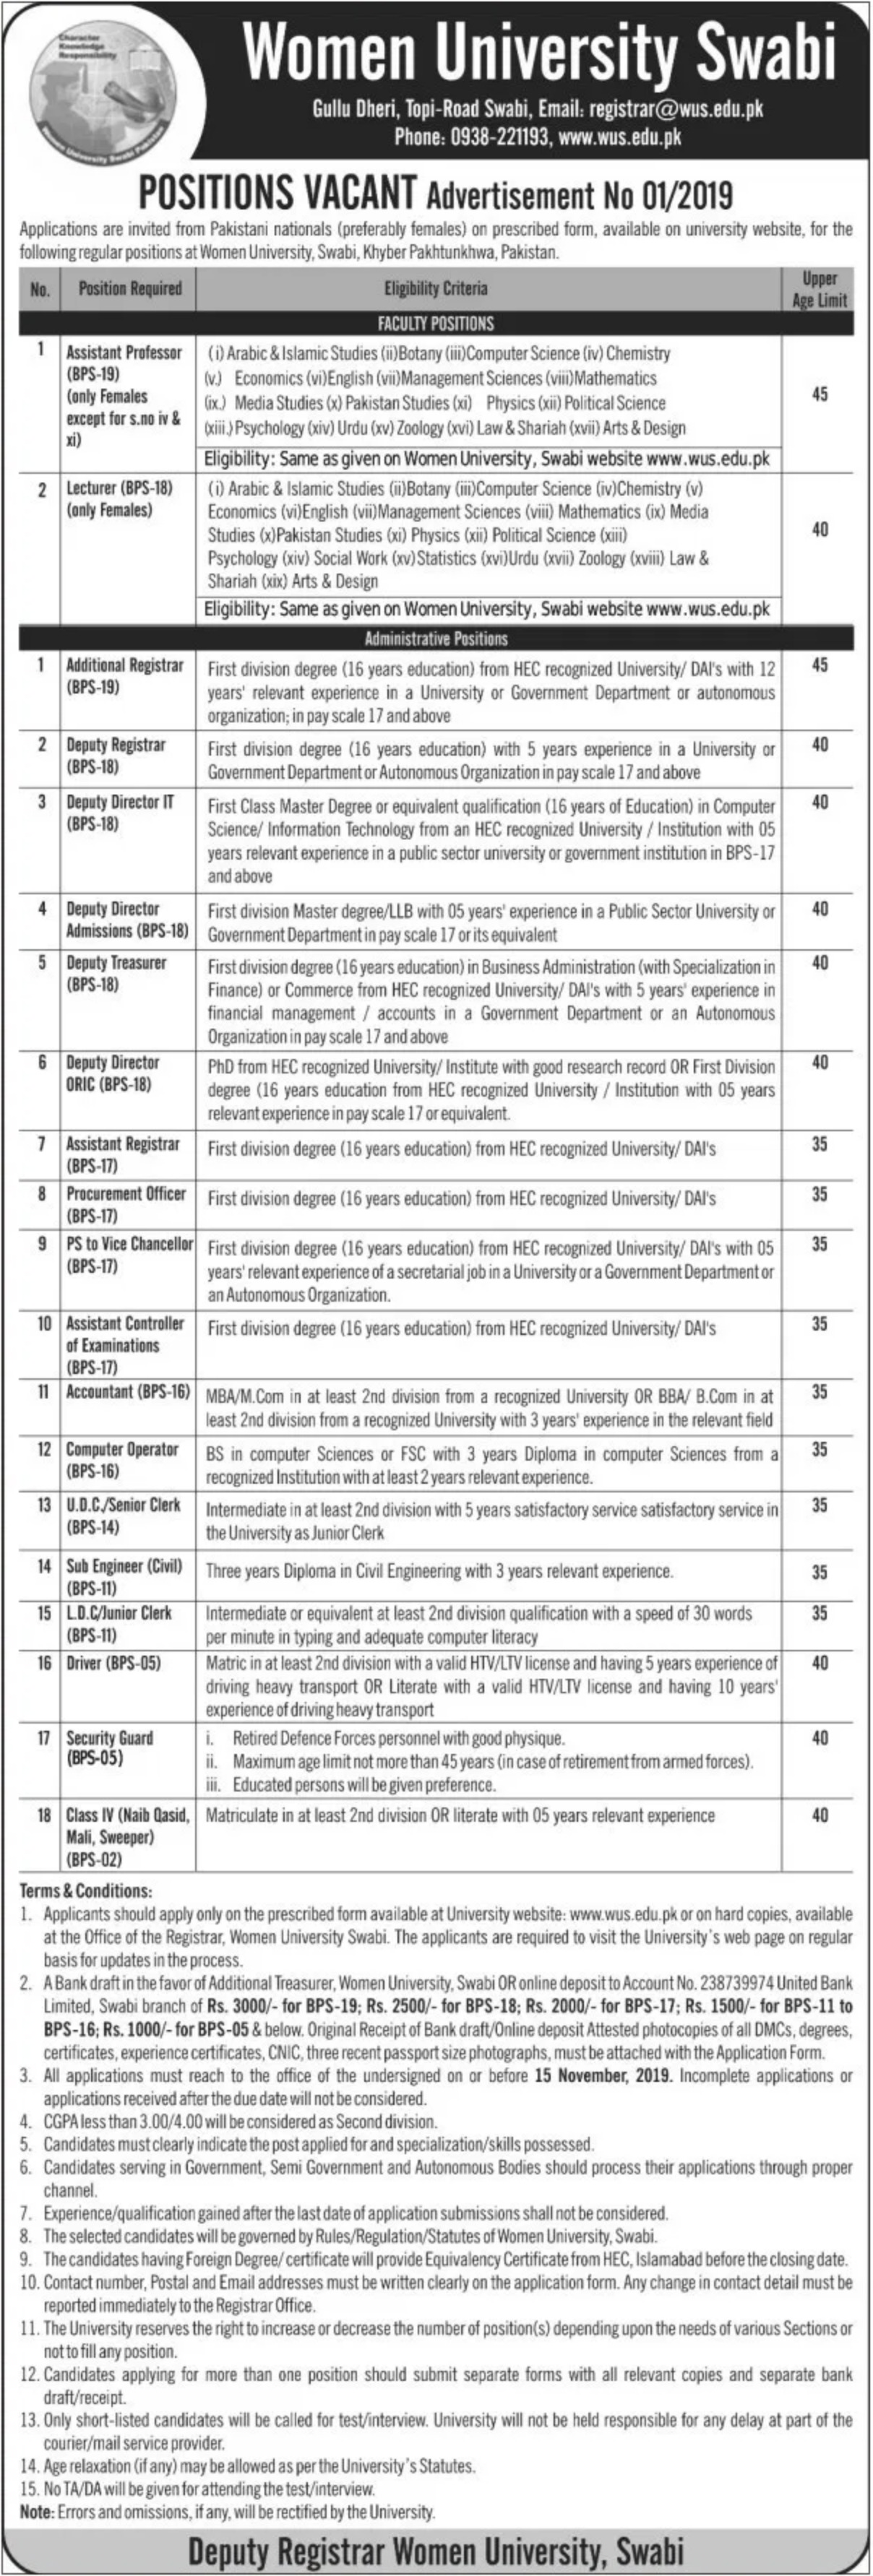 Women University Swabi Jobs 2019 Khyber Pakhtunkhwa